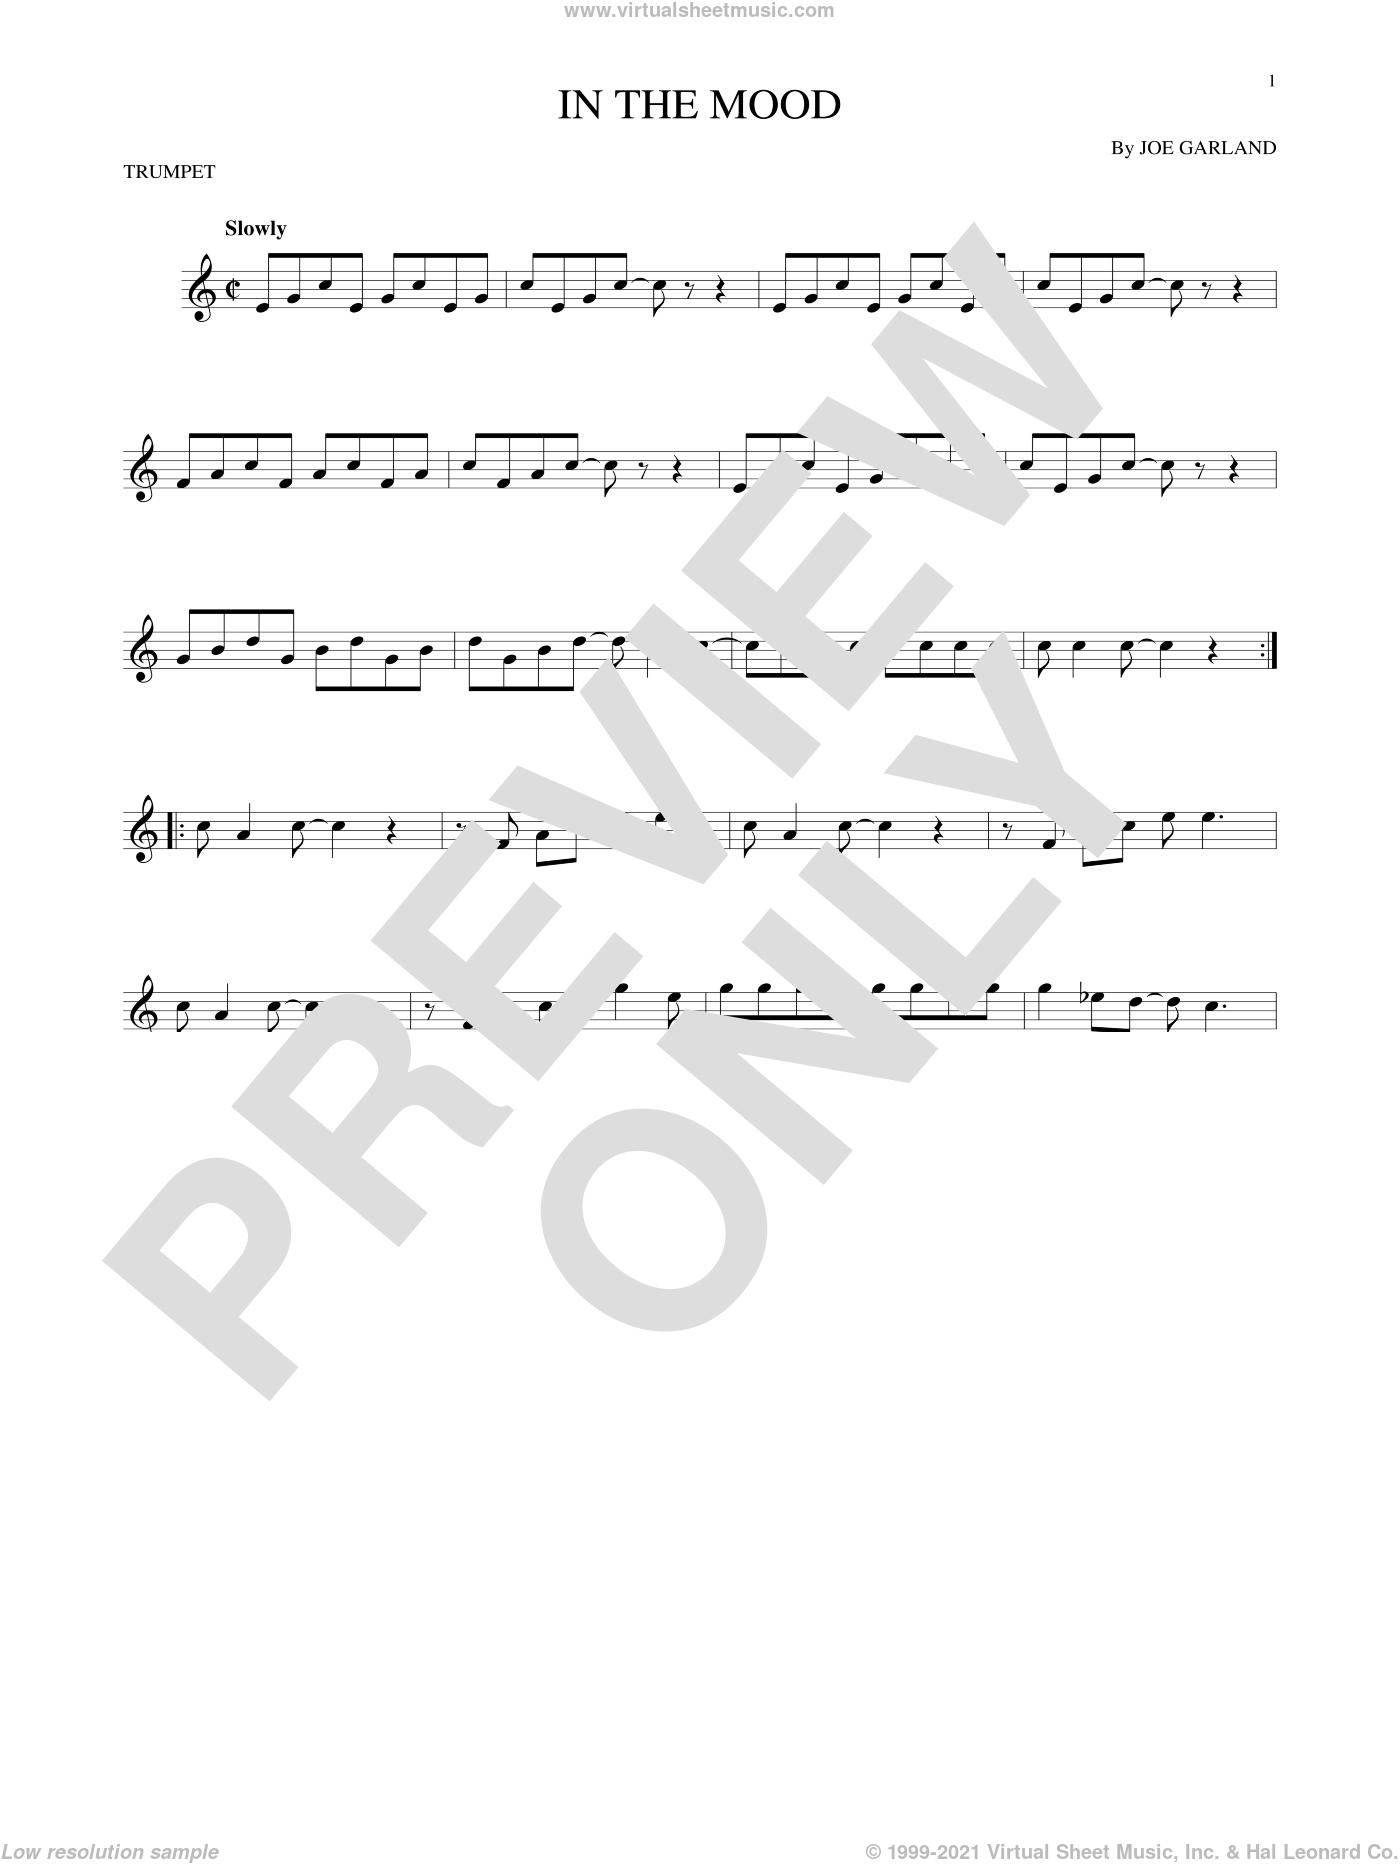 In The Mood sheet music for trumpet solo by Joe Garland and Glenn Miller & His Orchestra, intermediate skill level